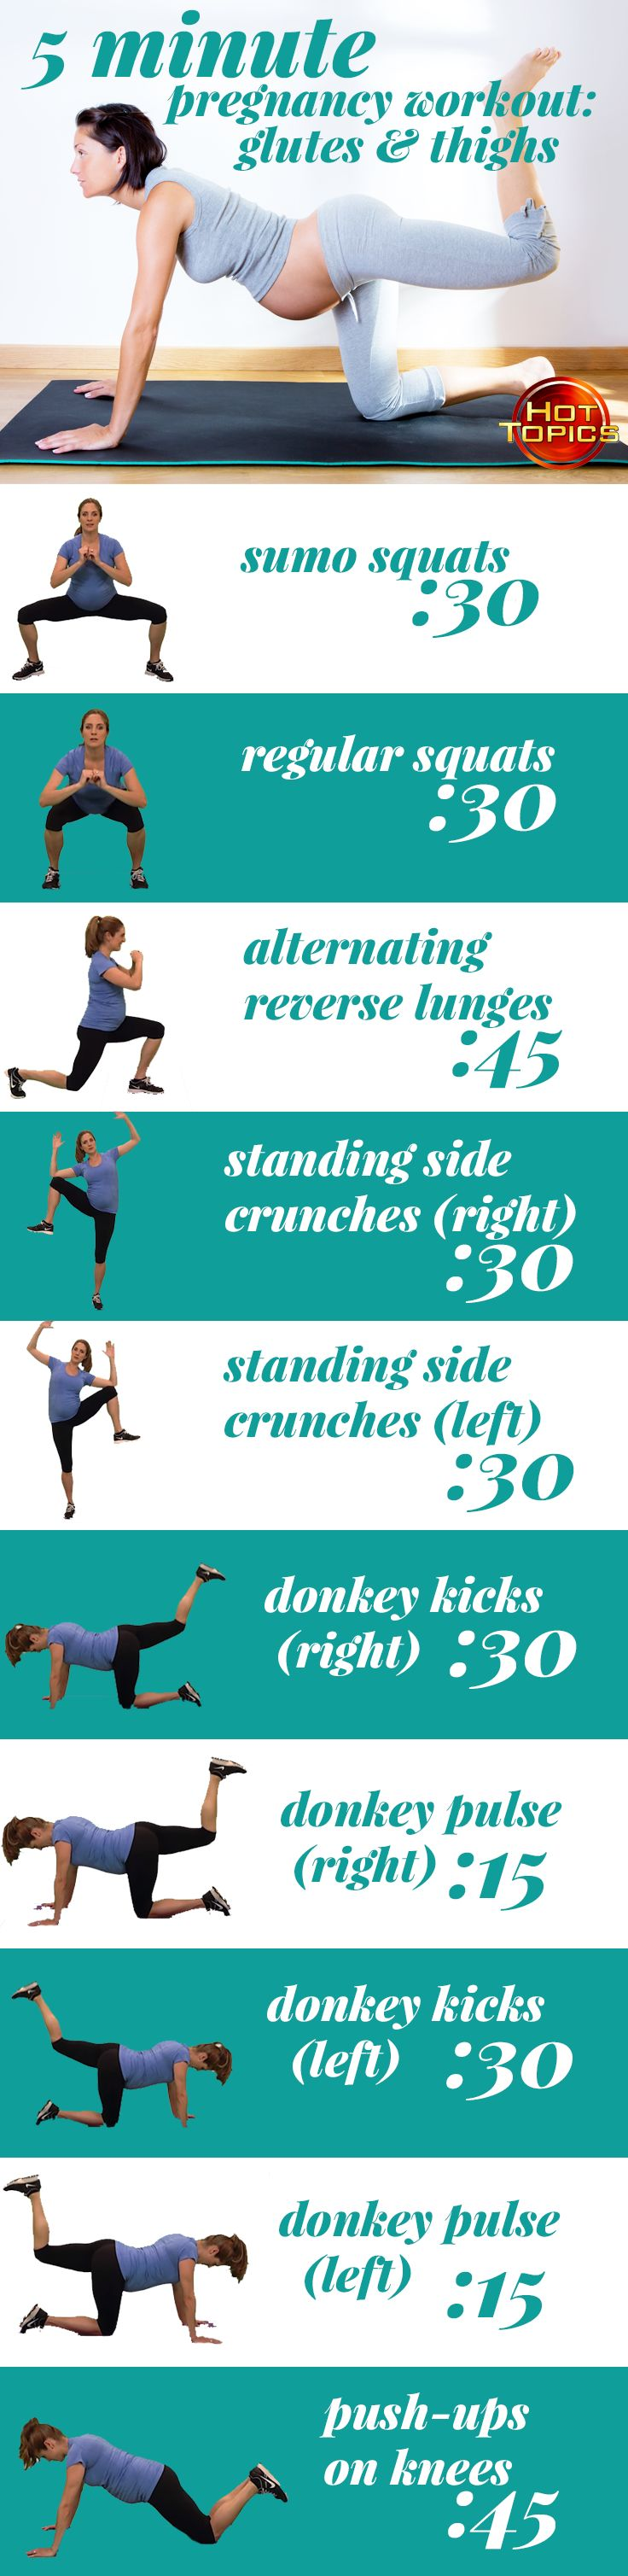 This five-minute pregnancy workout from @hcat will help shape up your glutes and thighs! #pregnancyworkout #hottopics